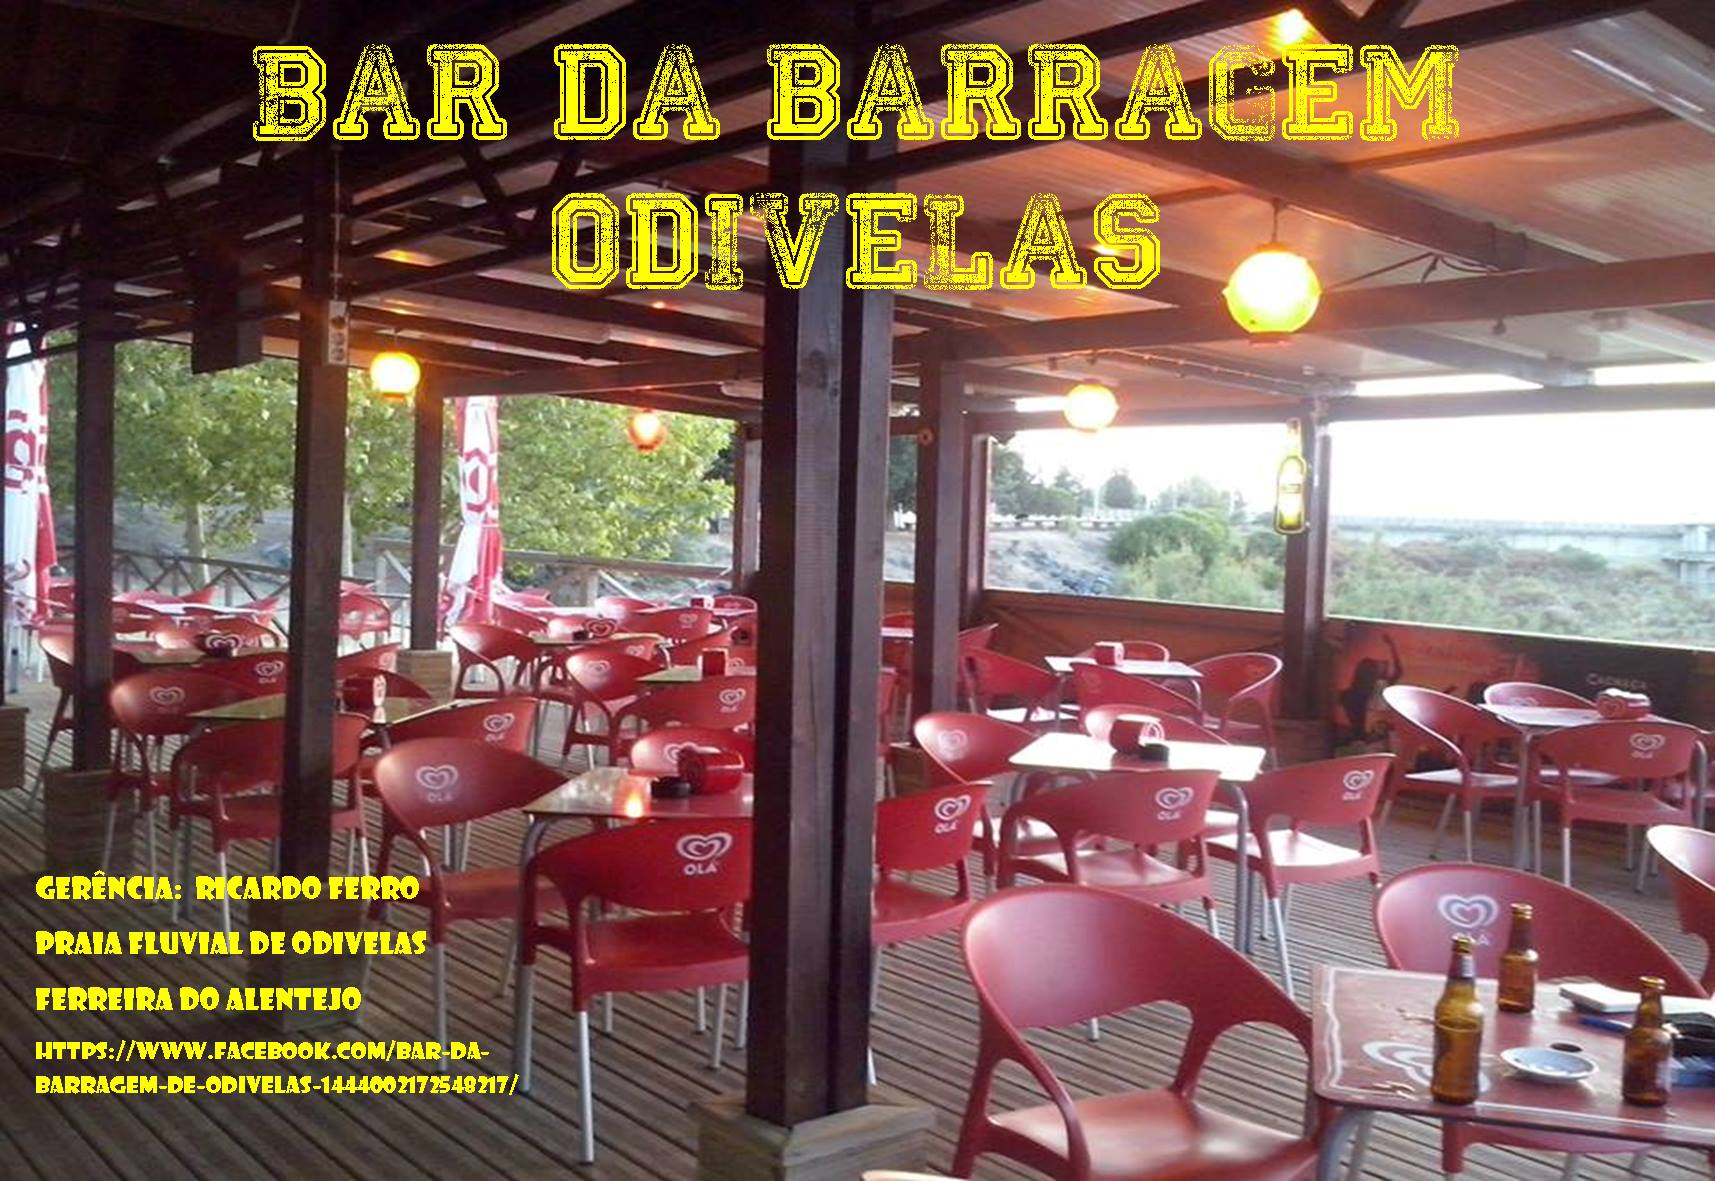 BAR DA BARRAGEM